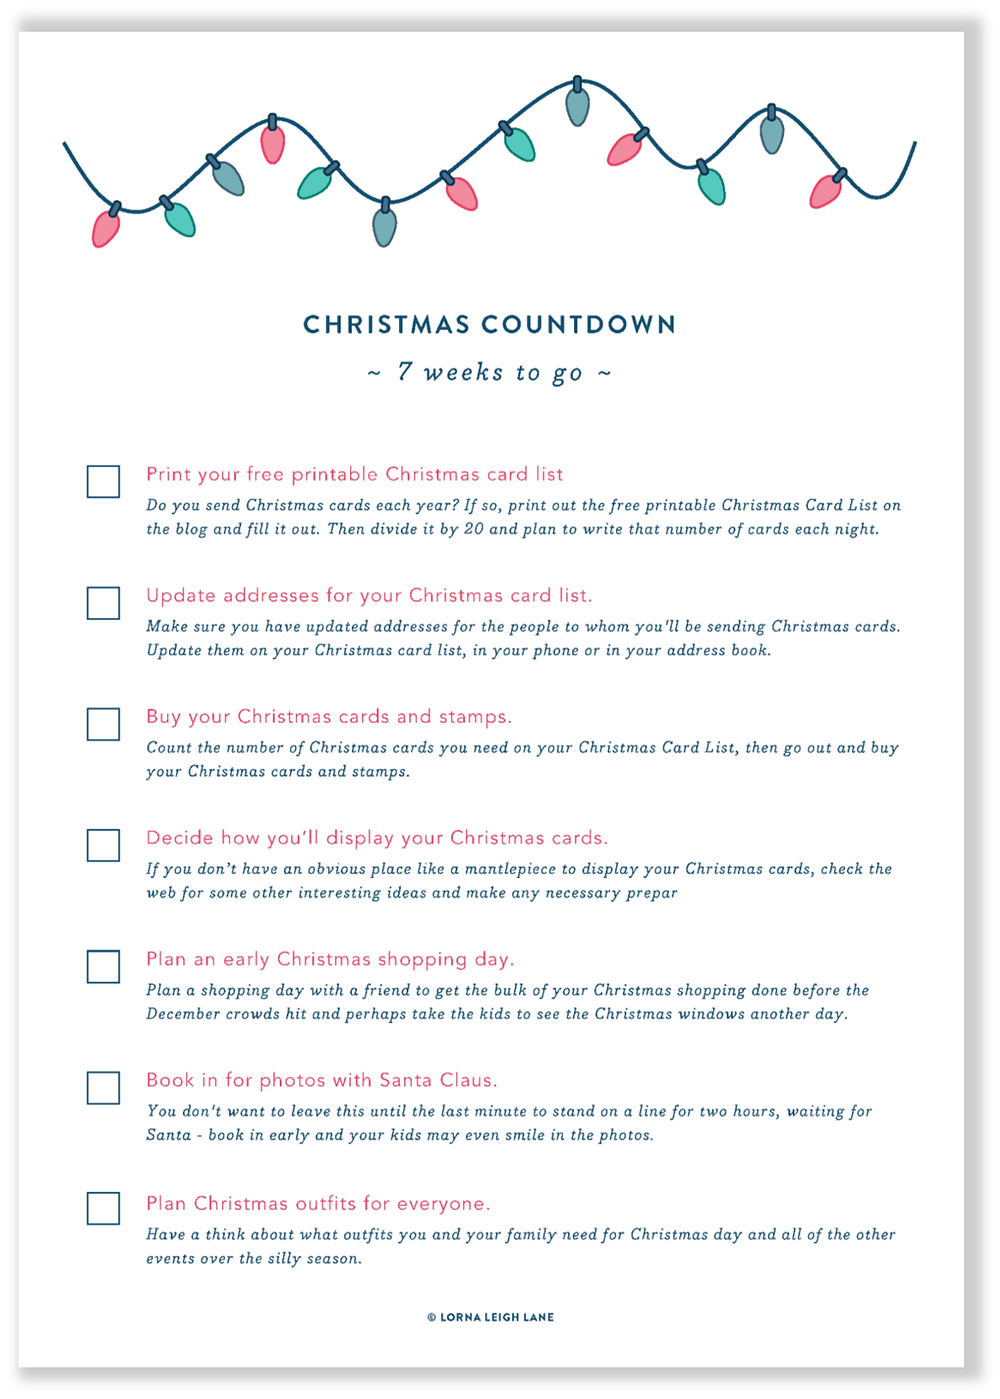 Christmas Countdown - 7 weeks to go